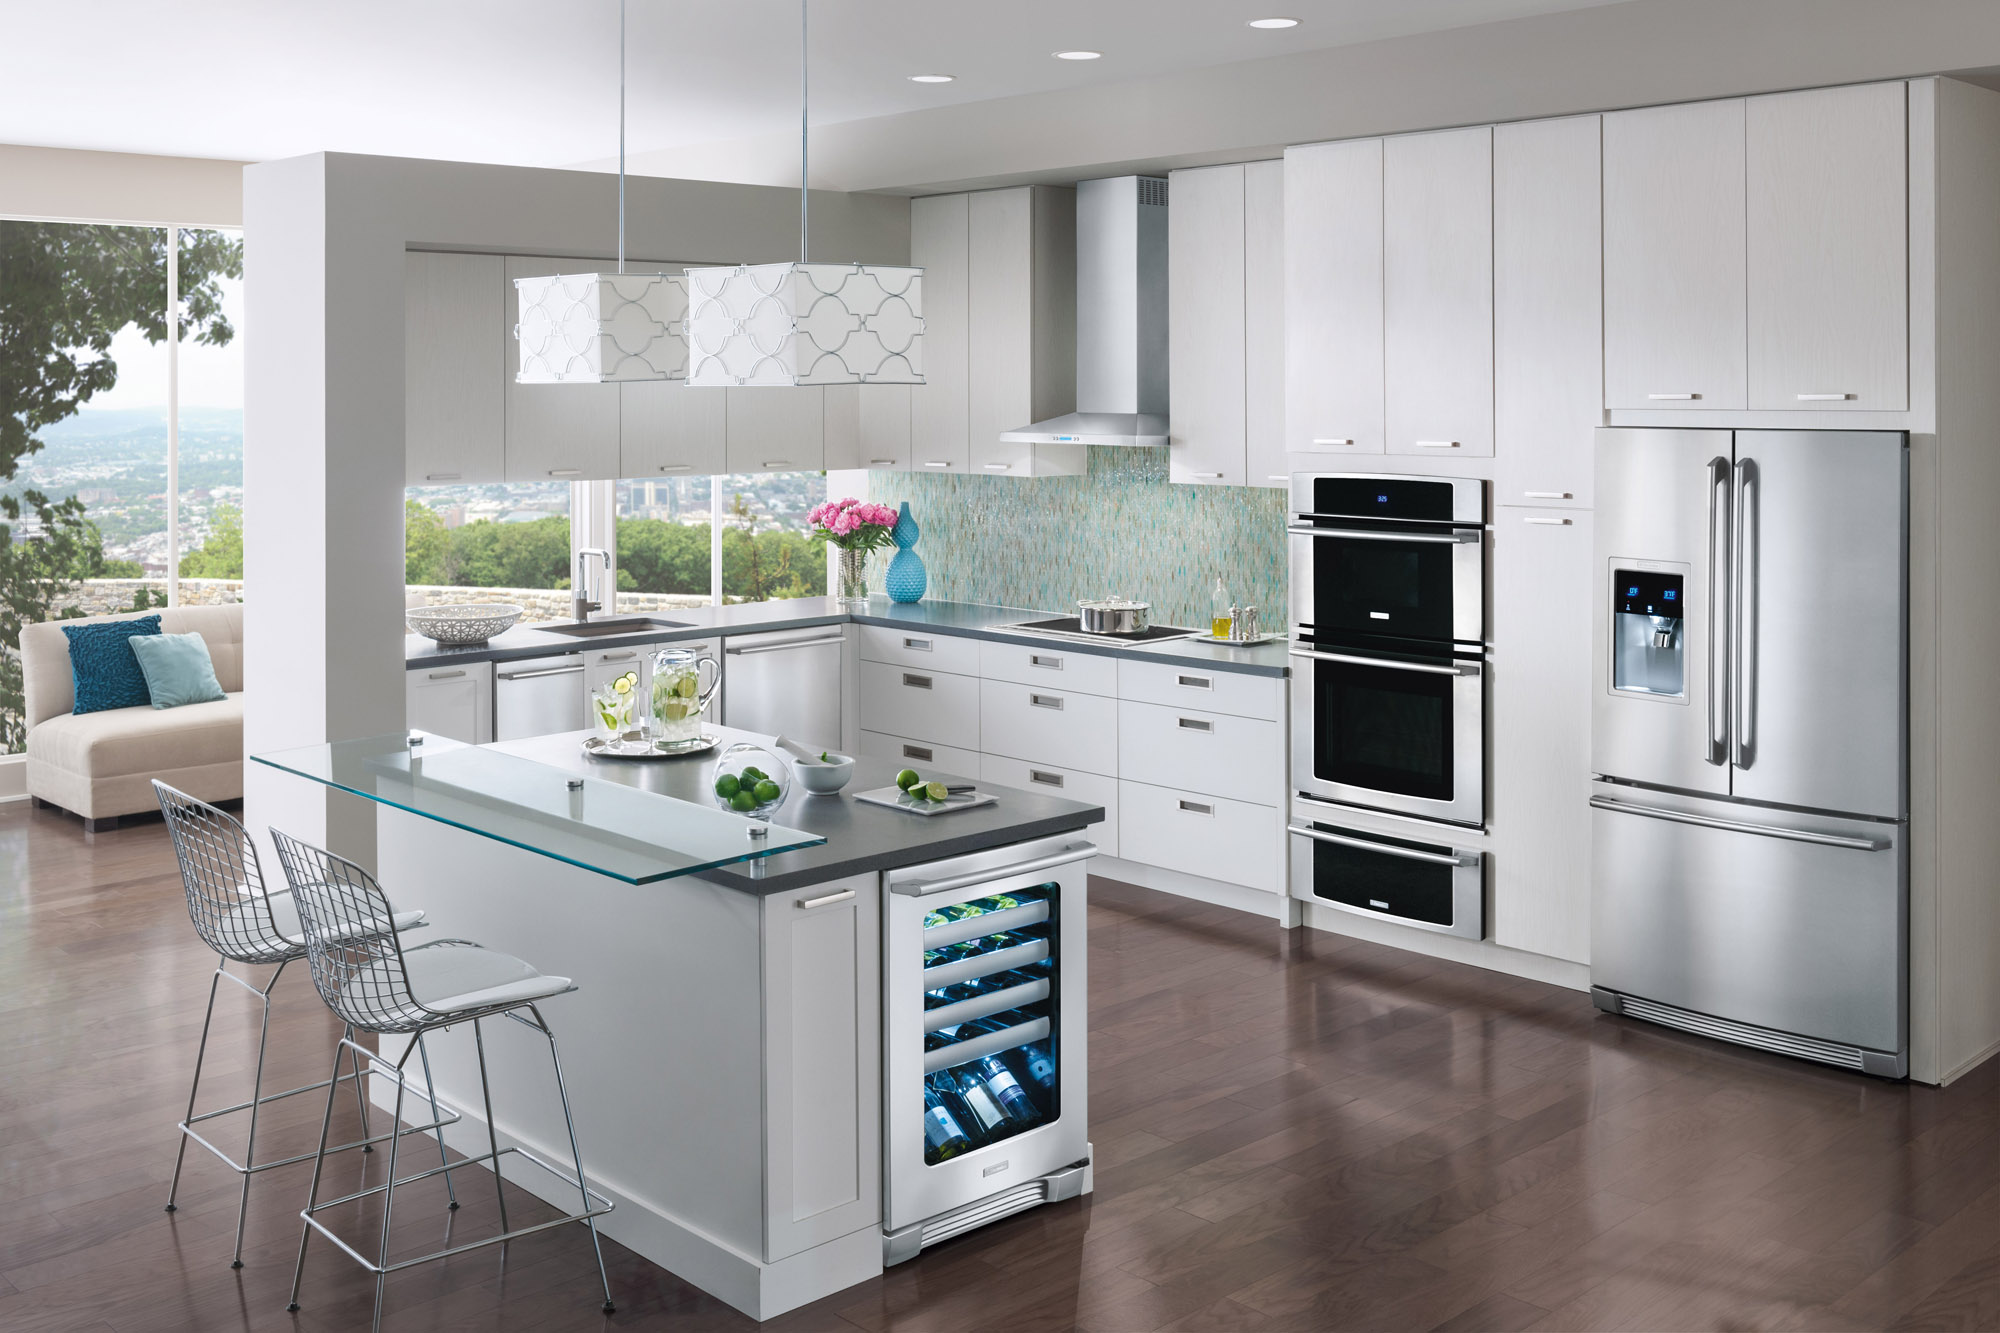 All White Kitchen And Appliances - Master final with appliances_angle1_236 major appliances the major appliances that all kitchens